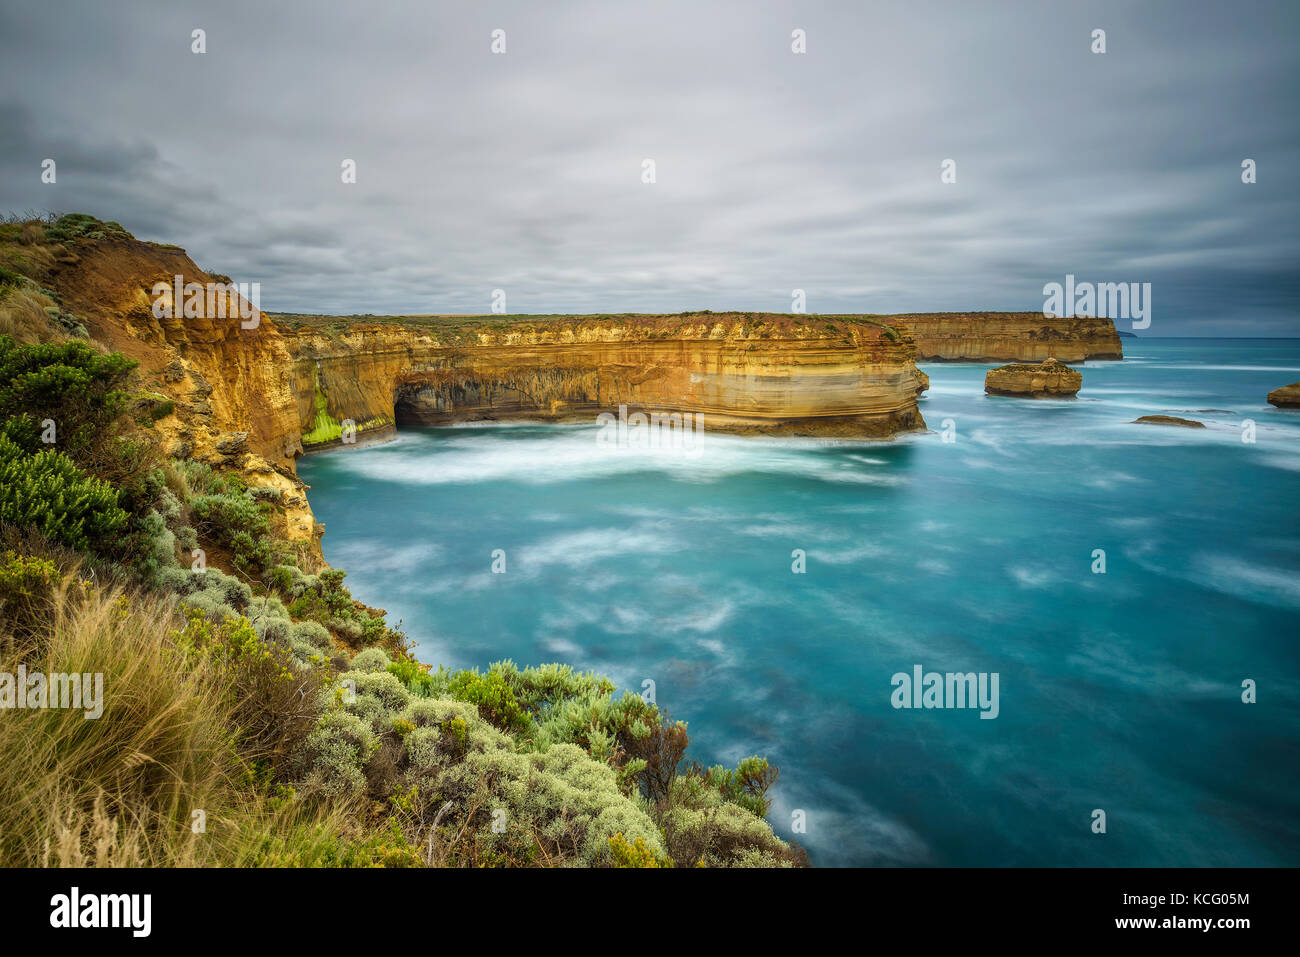 Loch Ard Gorge  in Victoria, Australia, near Port Campbell - Stock Image